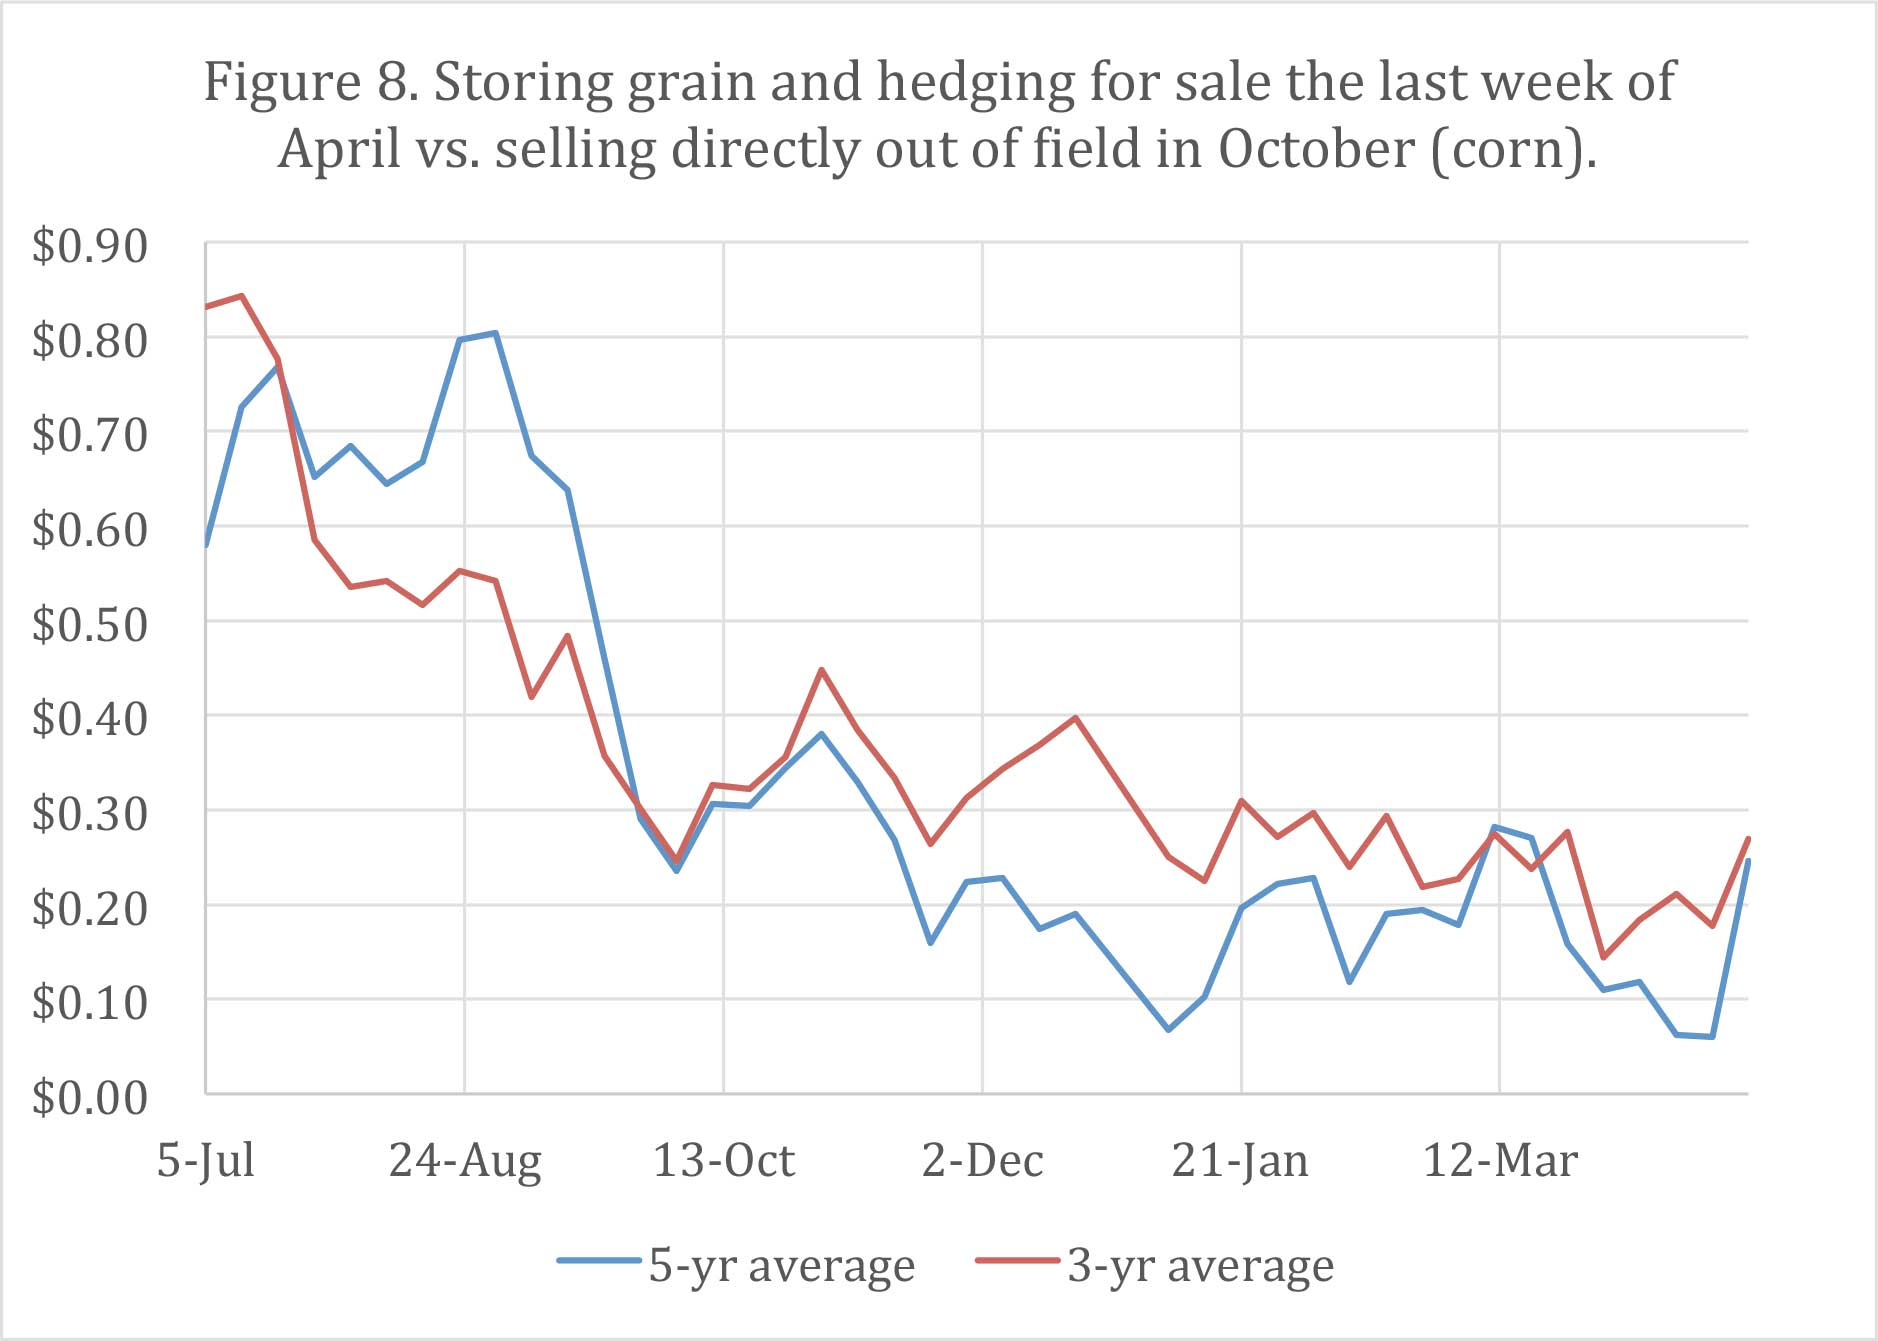 Figure 8. Storing grain and hedging for sale the last week of April vs. selling directly out of field in October (corn).